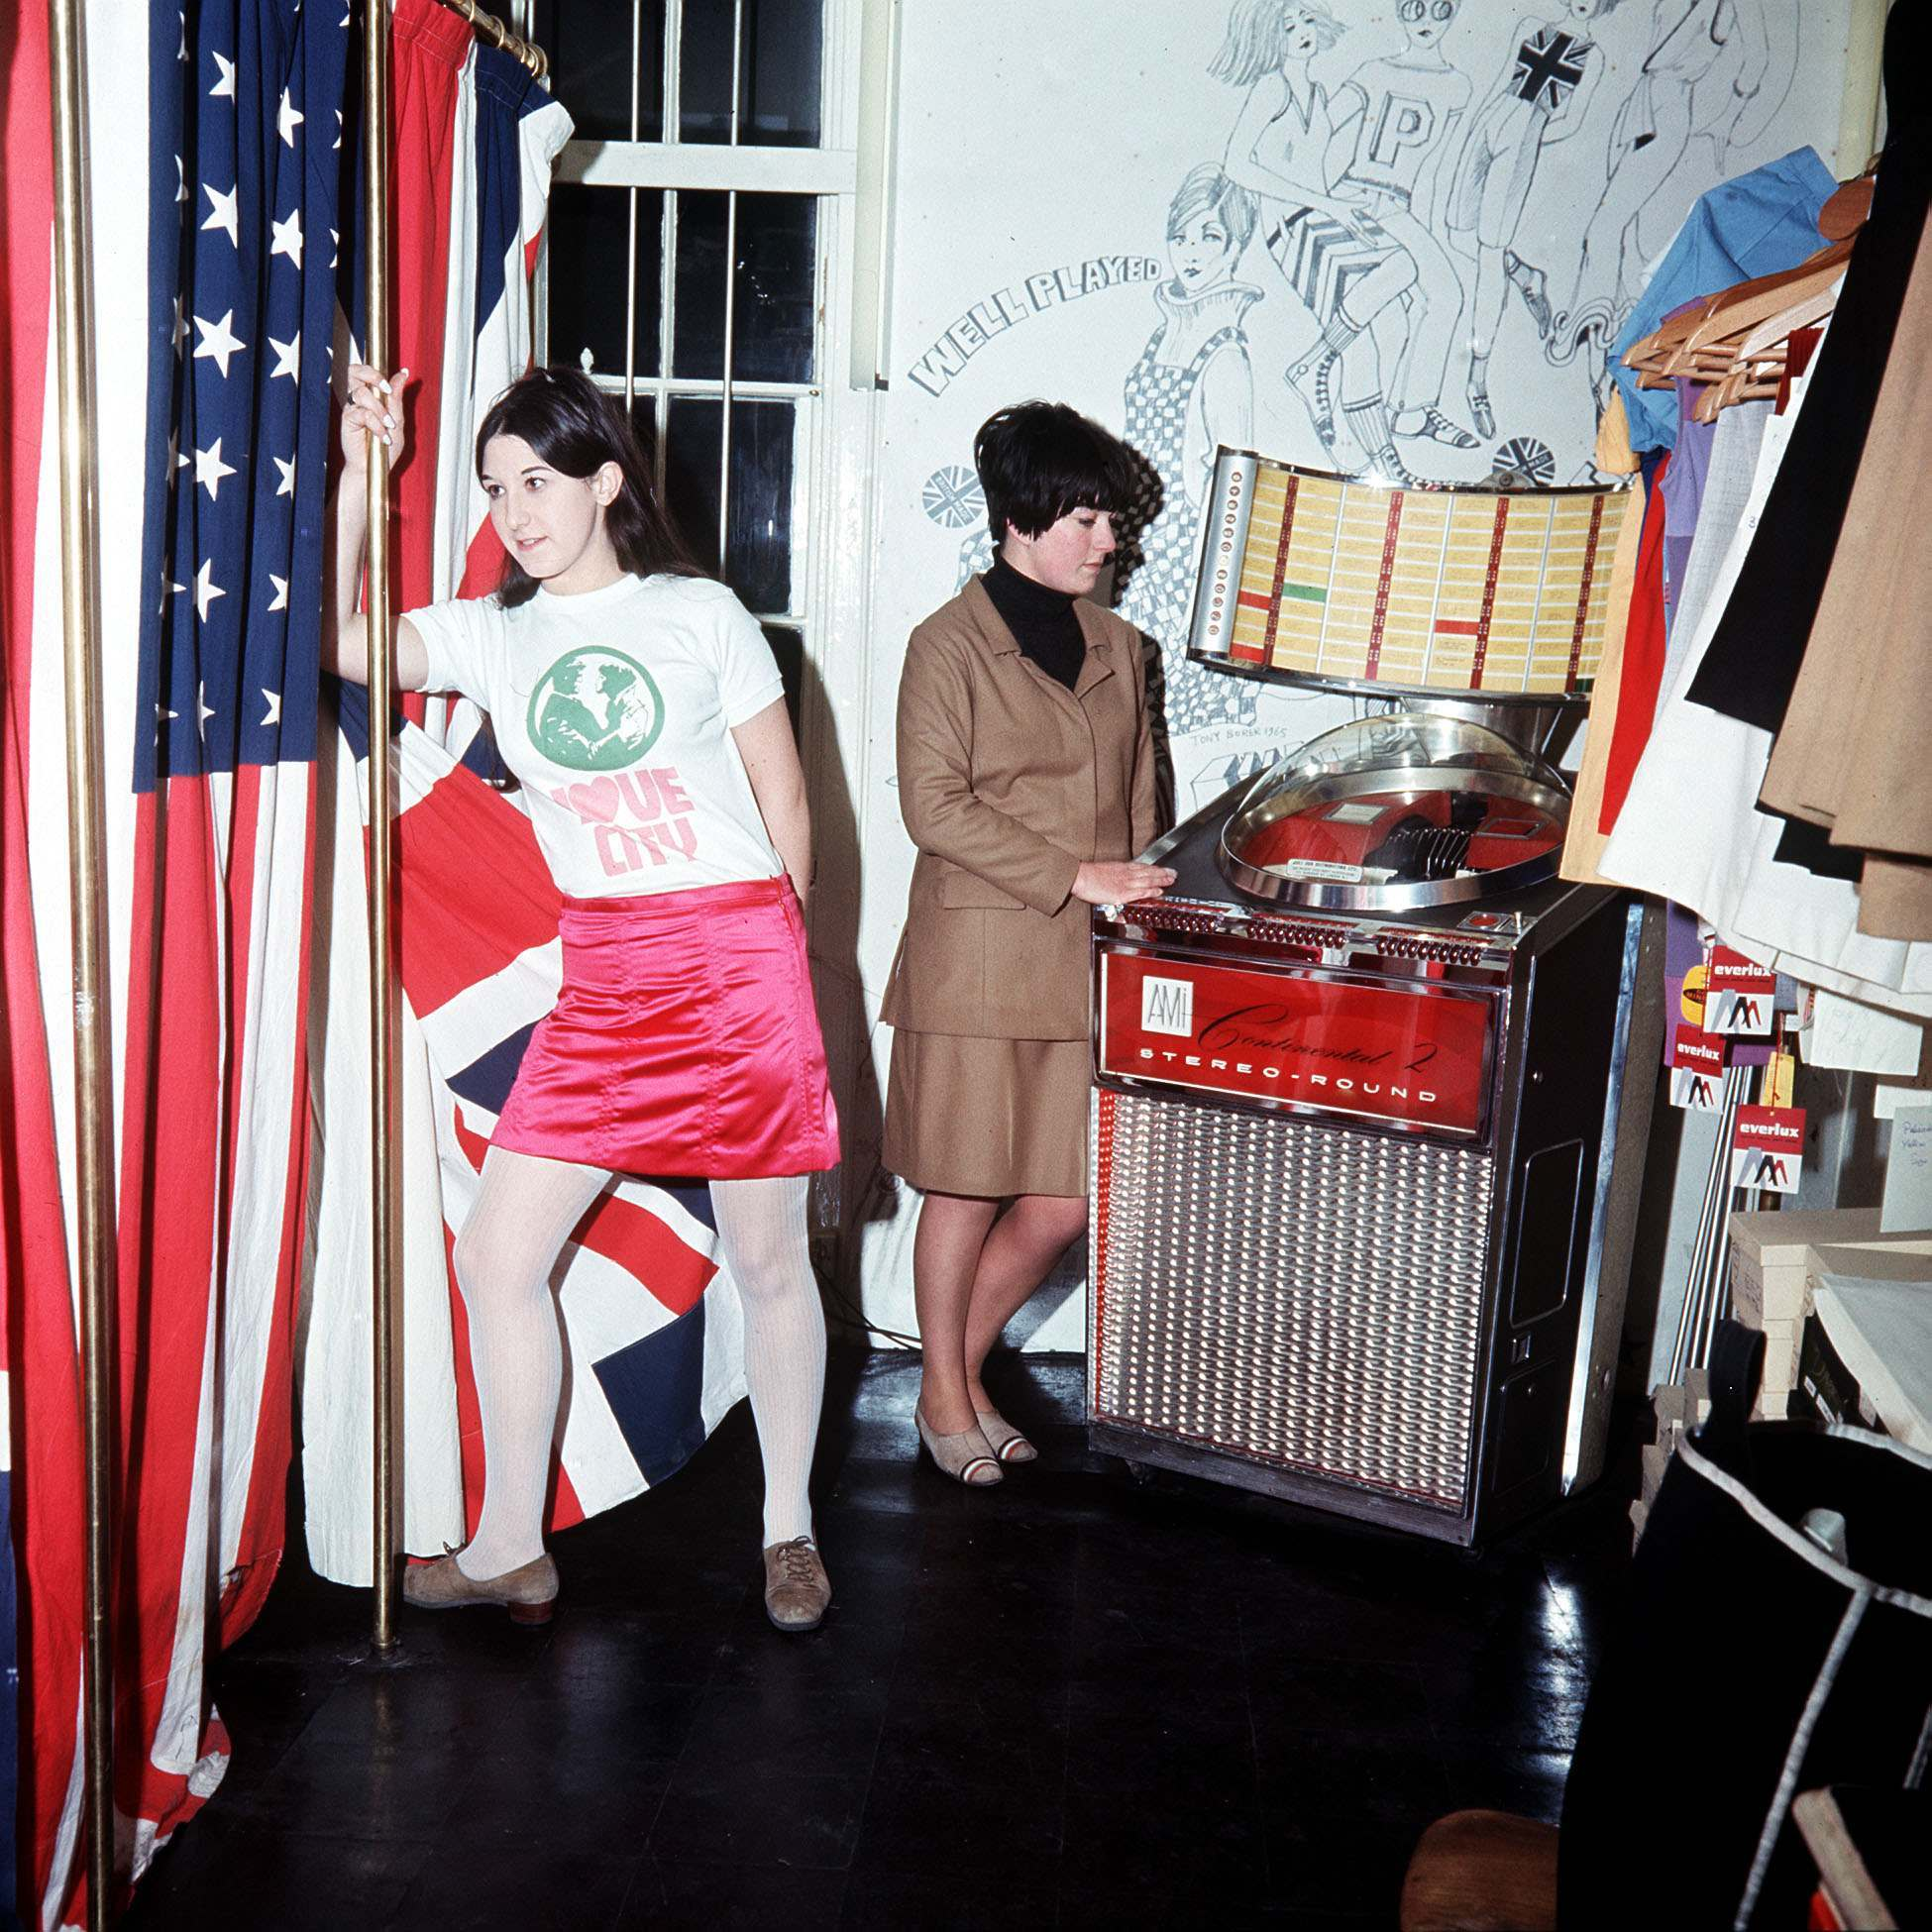 SWINGING LONDON 1966: In Pauline Fordham Ganton Street, near Carnaby Street. Customer Jackie Binder in a 'with it' blouse and skirt stands beside a dressing room decorated with the Union Jack and the Stars and Stripes. In the background, Jacqueline Ball plays the juke box.